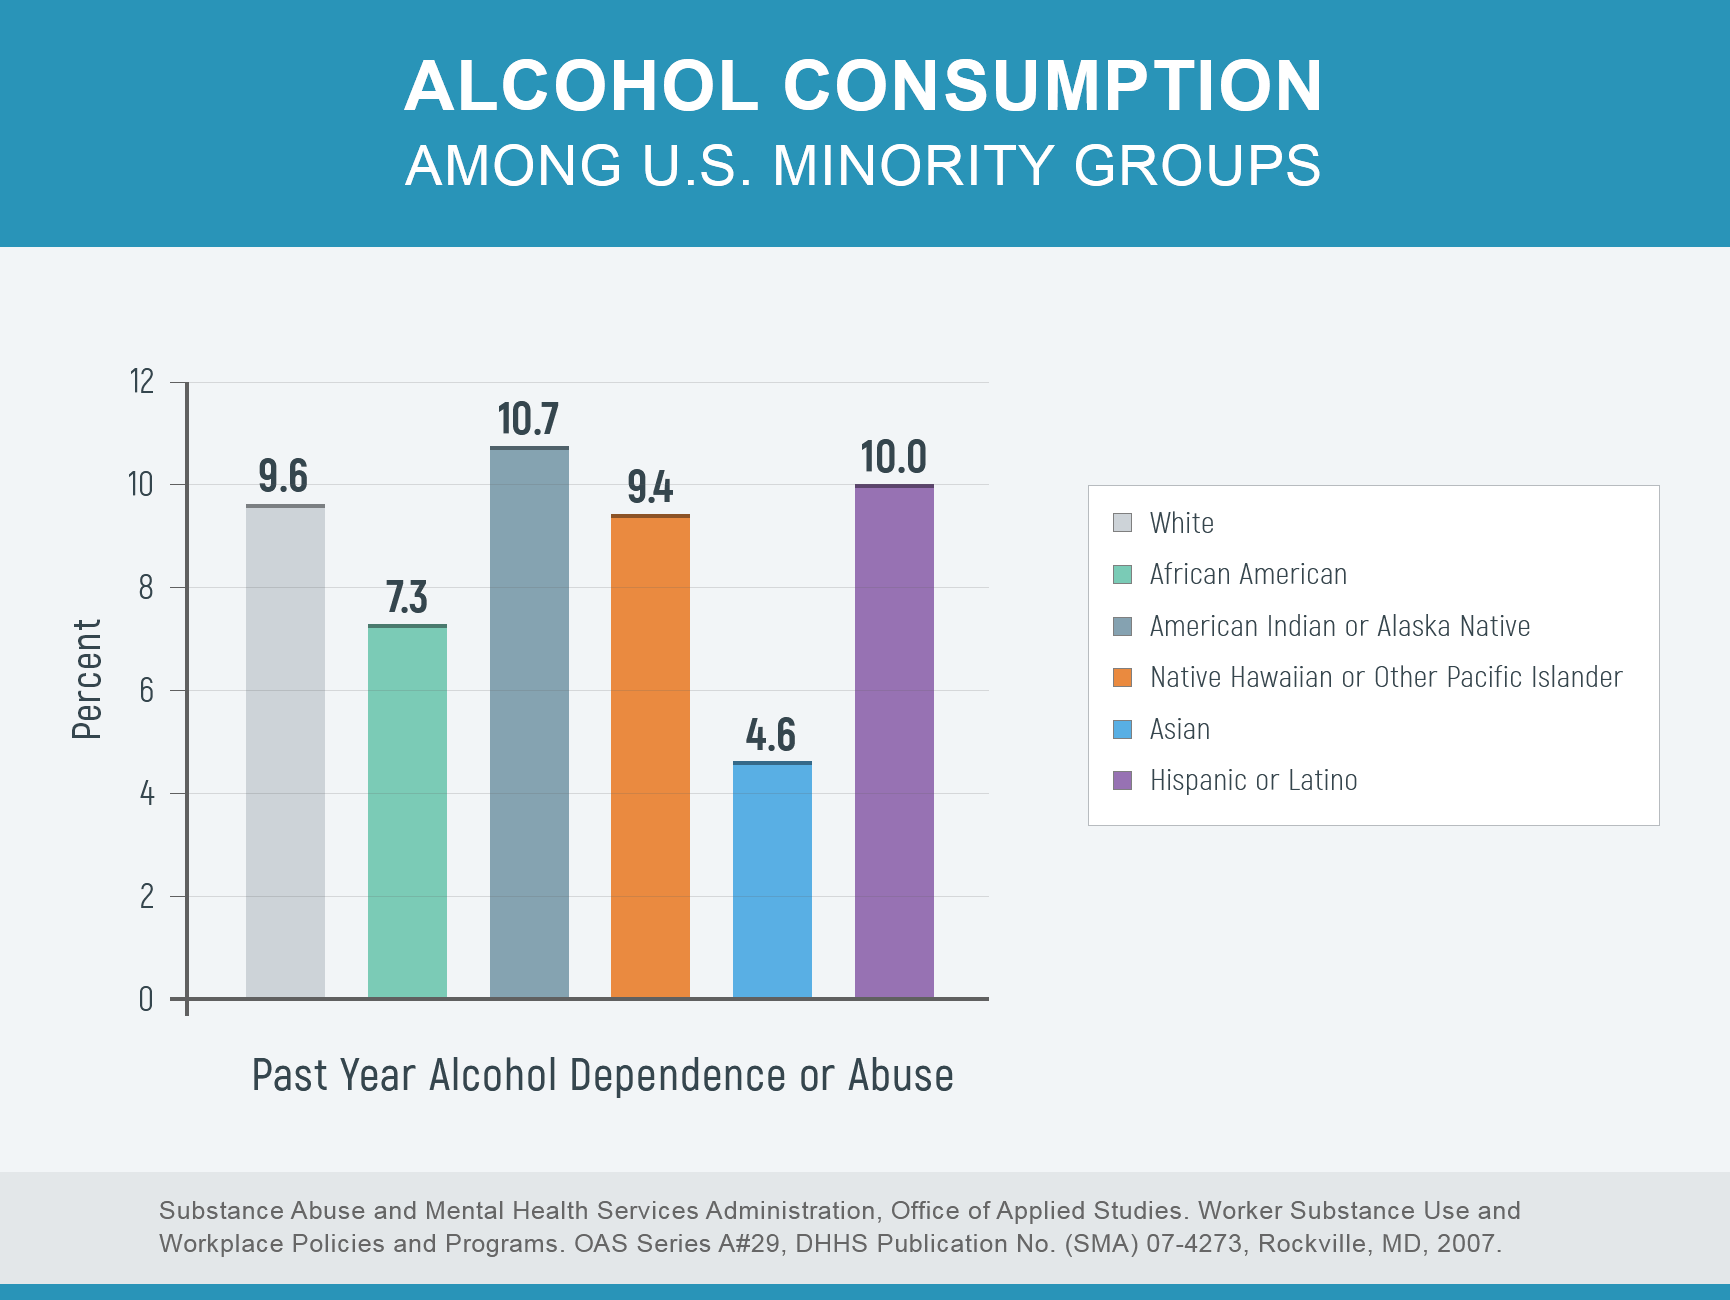 alcohol consumption among minorities chart